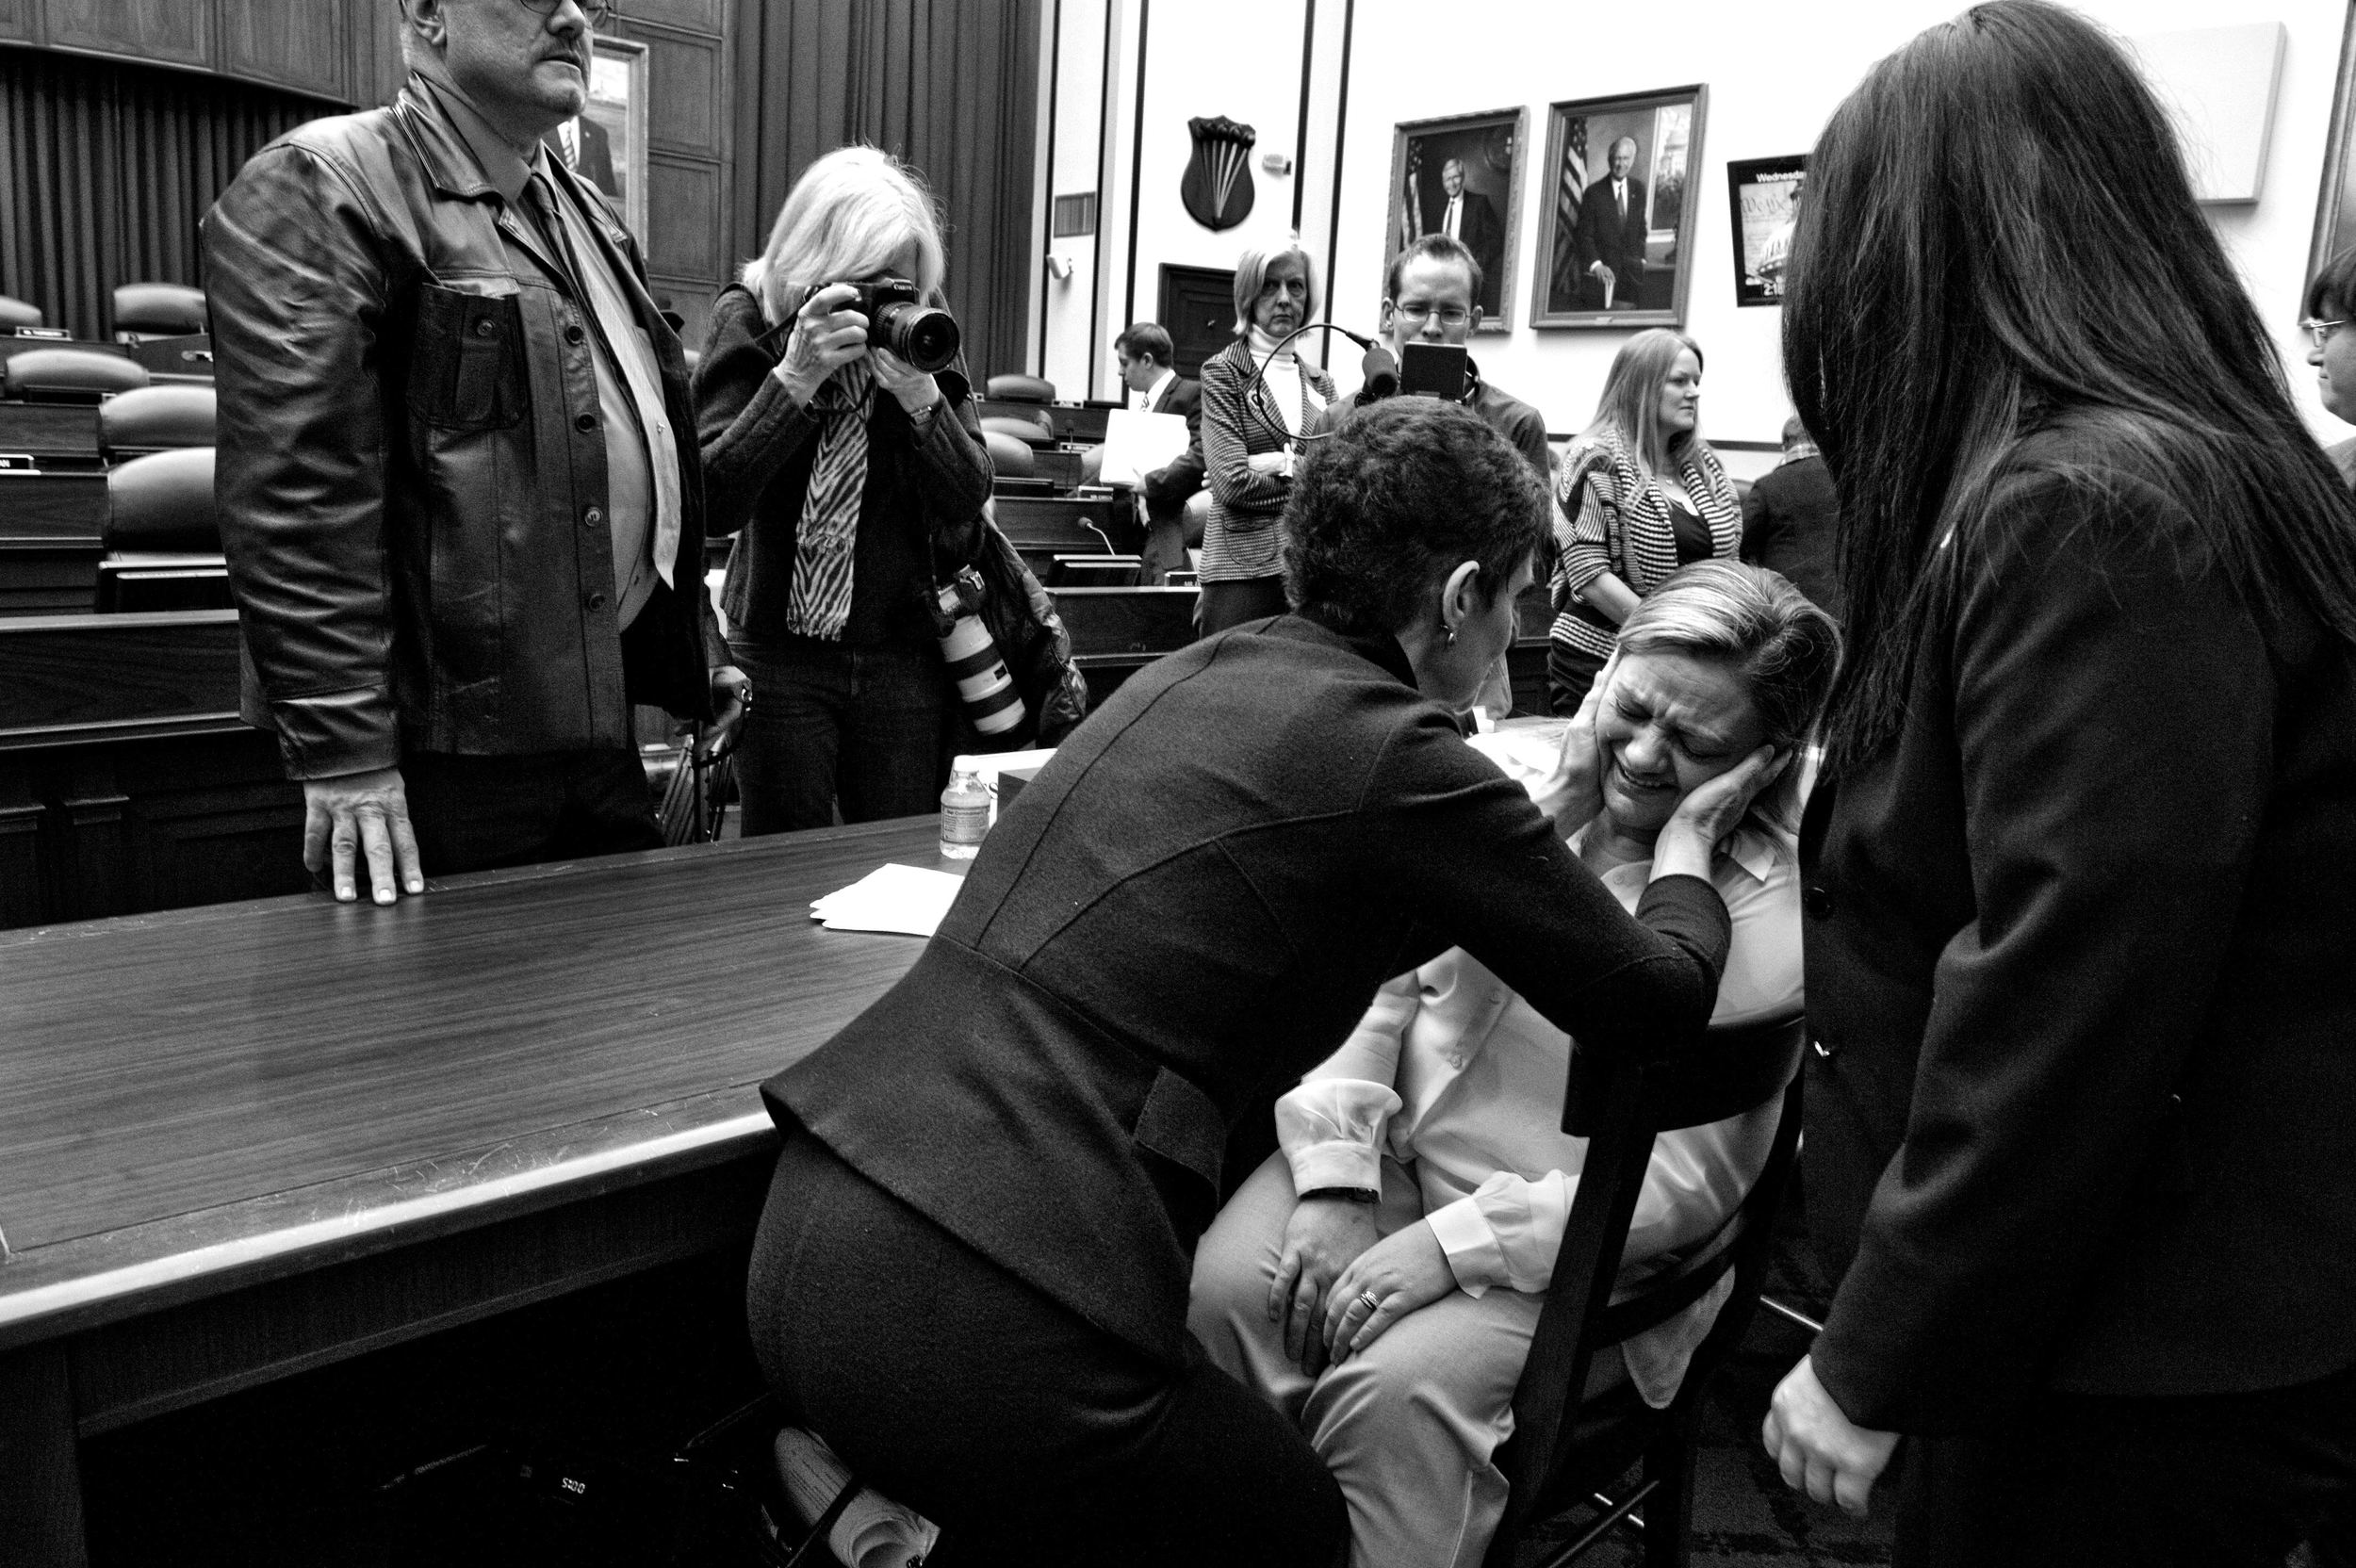 The War Within:  TSgt. Jennifer Norris, who was drugged and raped by her recruiter after joining the US Air Force when she was 21-years-old, is comforted by Nancy Parrish, President of Protect Our Defenders, as she breaks down after testifying before the House Armed Services Committee hearing on Capitol Hill.  © Mary F. Calvert/ ZUMAPRESS.com